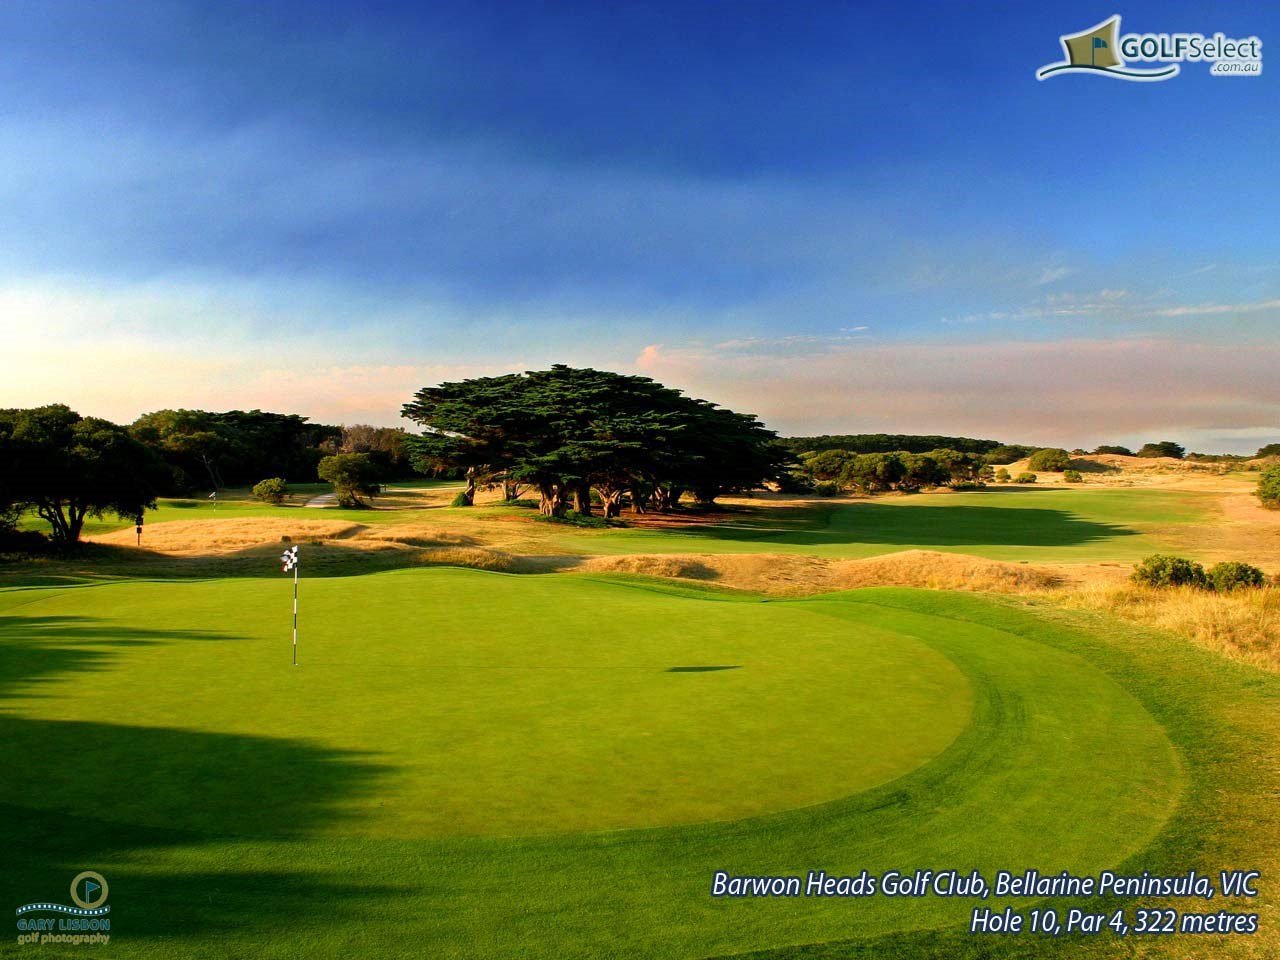 Barwon Heads Golf Club Hole 10, Par 4, 322 metres